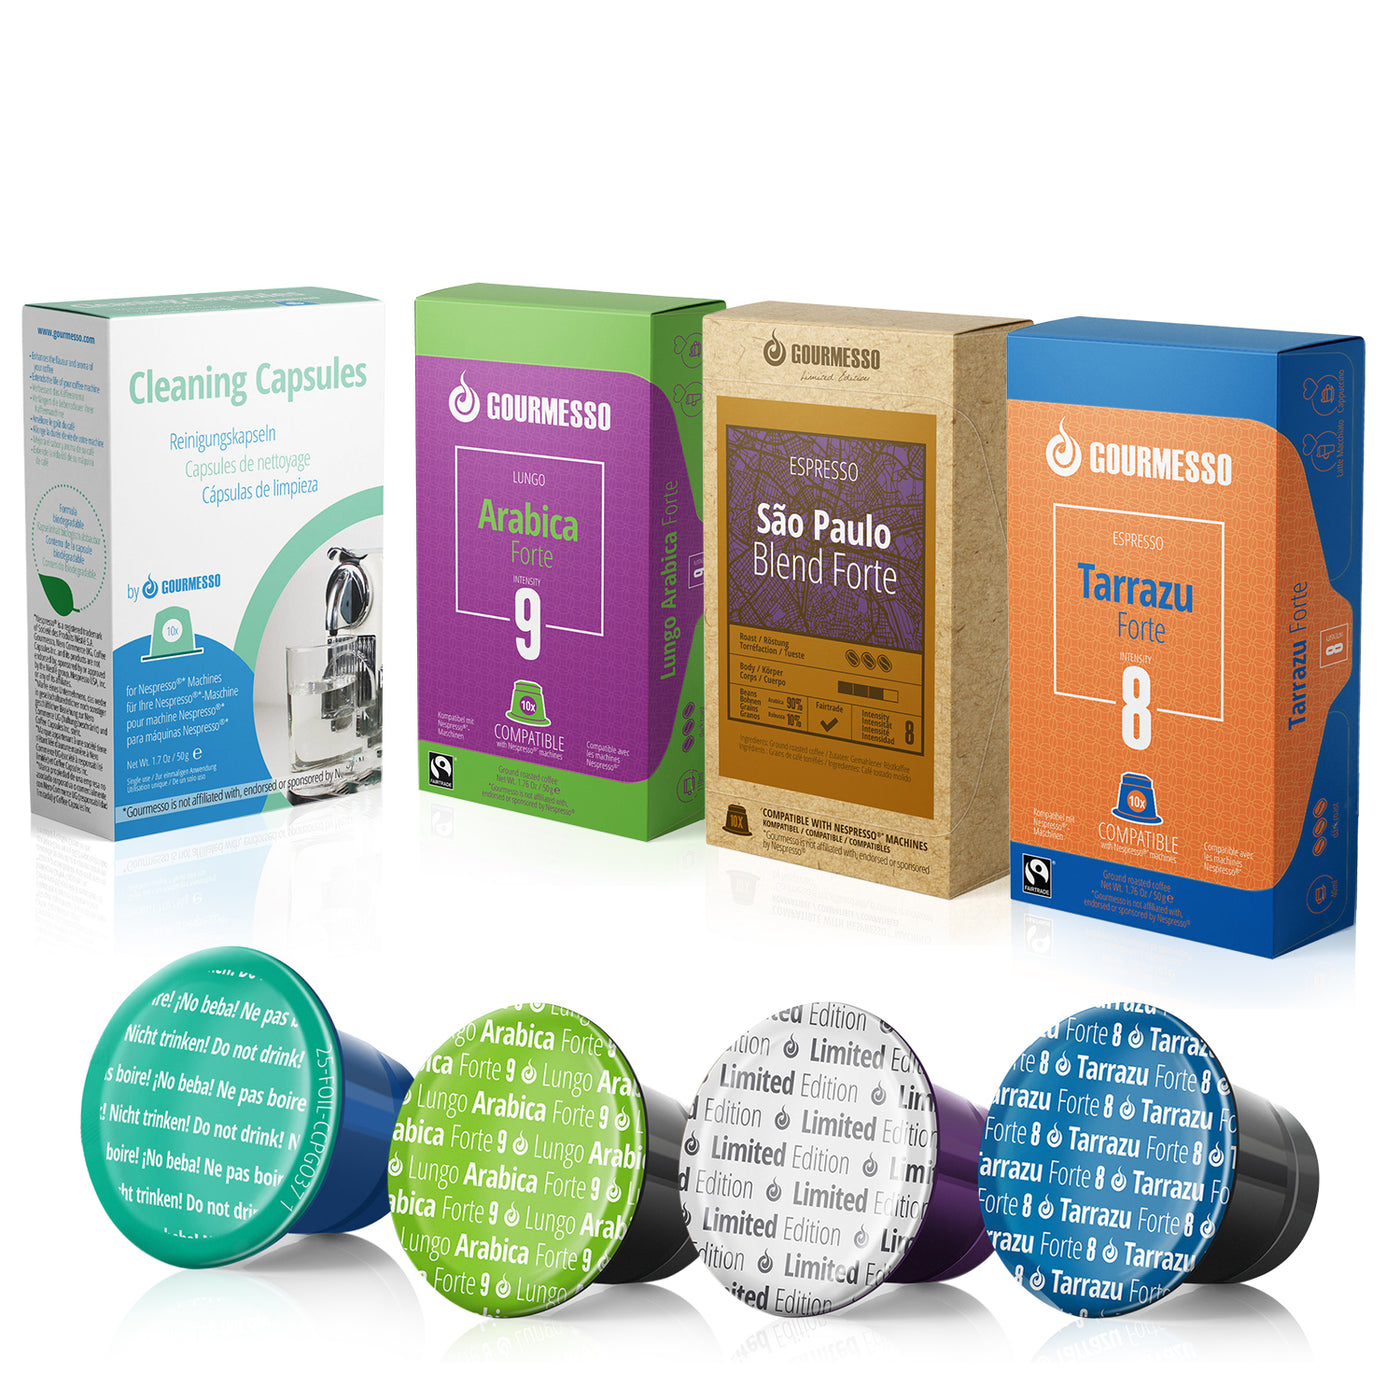 cleaning capsules with 3 free espresso pods compatible with nespresso original machines